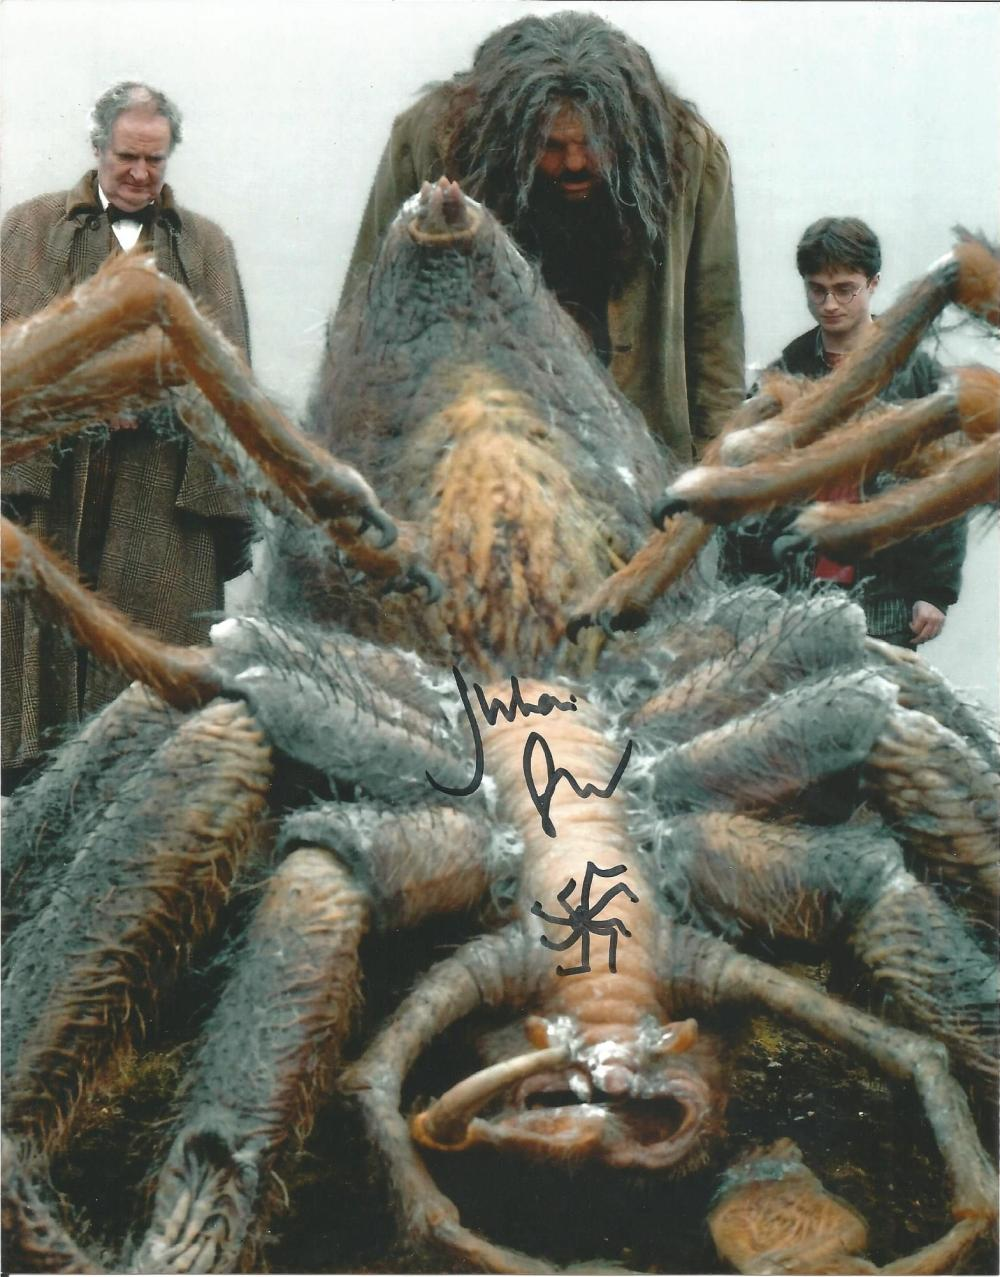 Julian Glover Harry Potter hand signed 10x8 photo. This beautiful hand signed photo depicts Julian